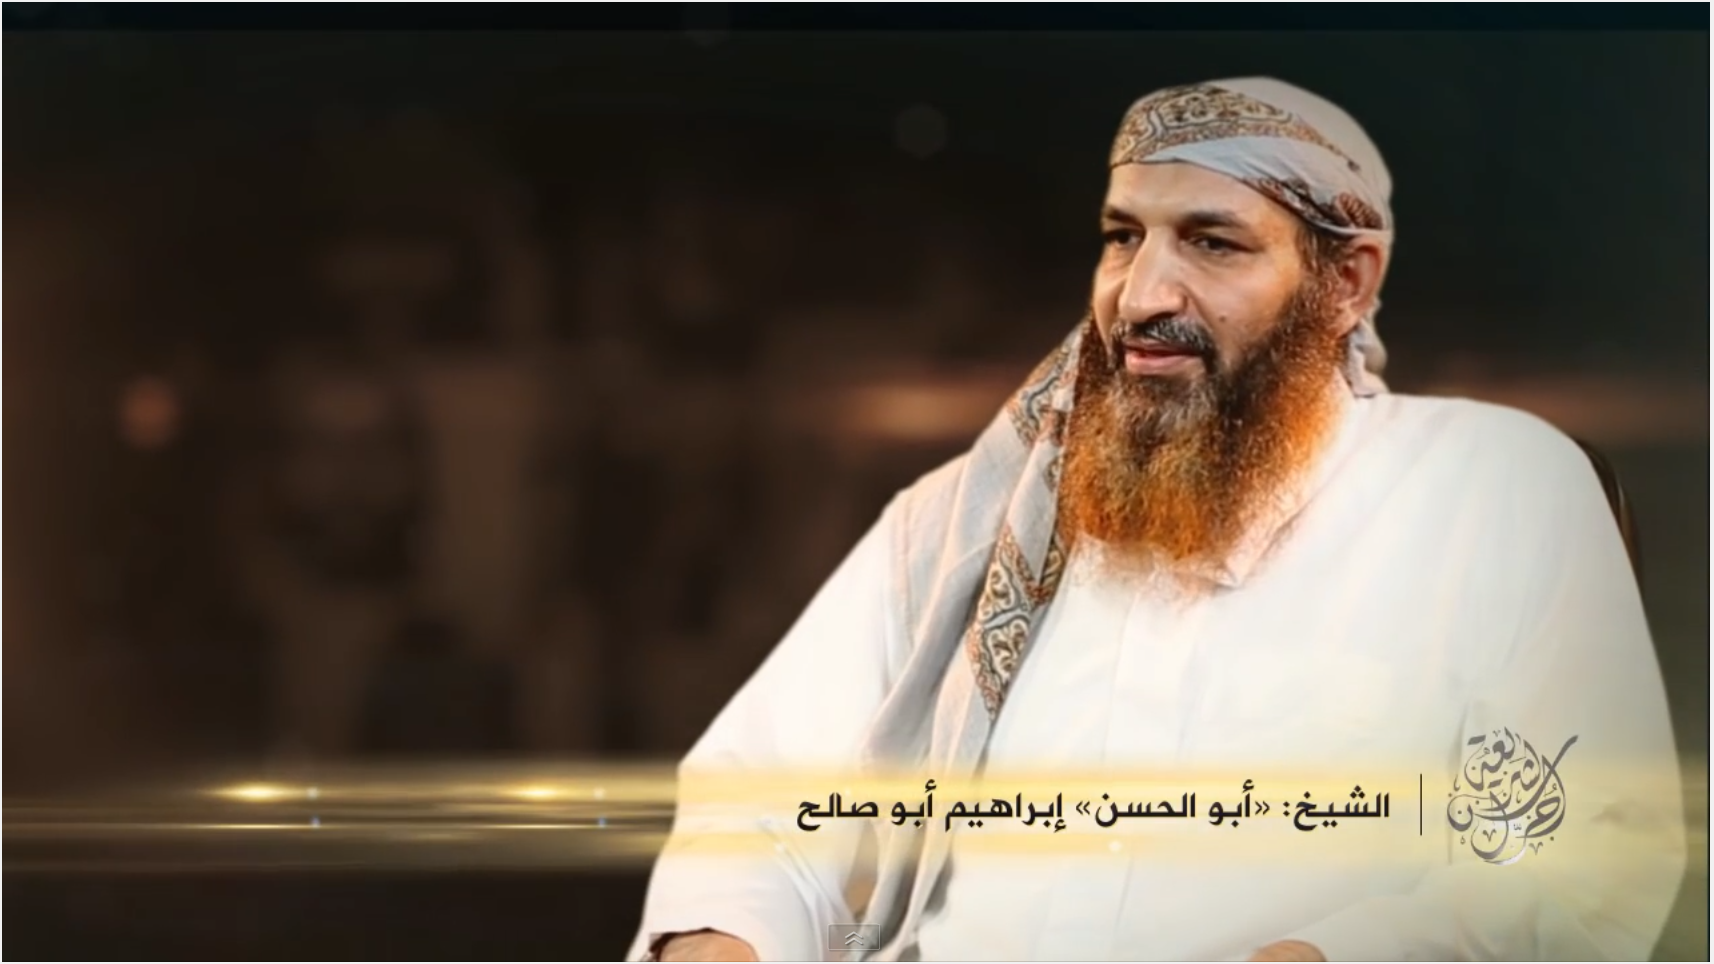 al qaeda in the arabian peninsula In 2013, aqap's leader, nasir al-wuyashi, is said to have been named al-qaeda leader ayman al-zawahiri's second-in-command this suggests that he will ultimately inherit command of the core al.